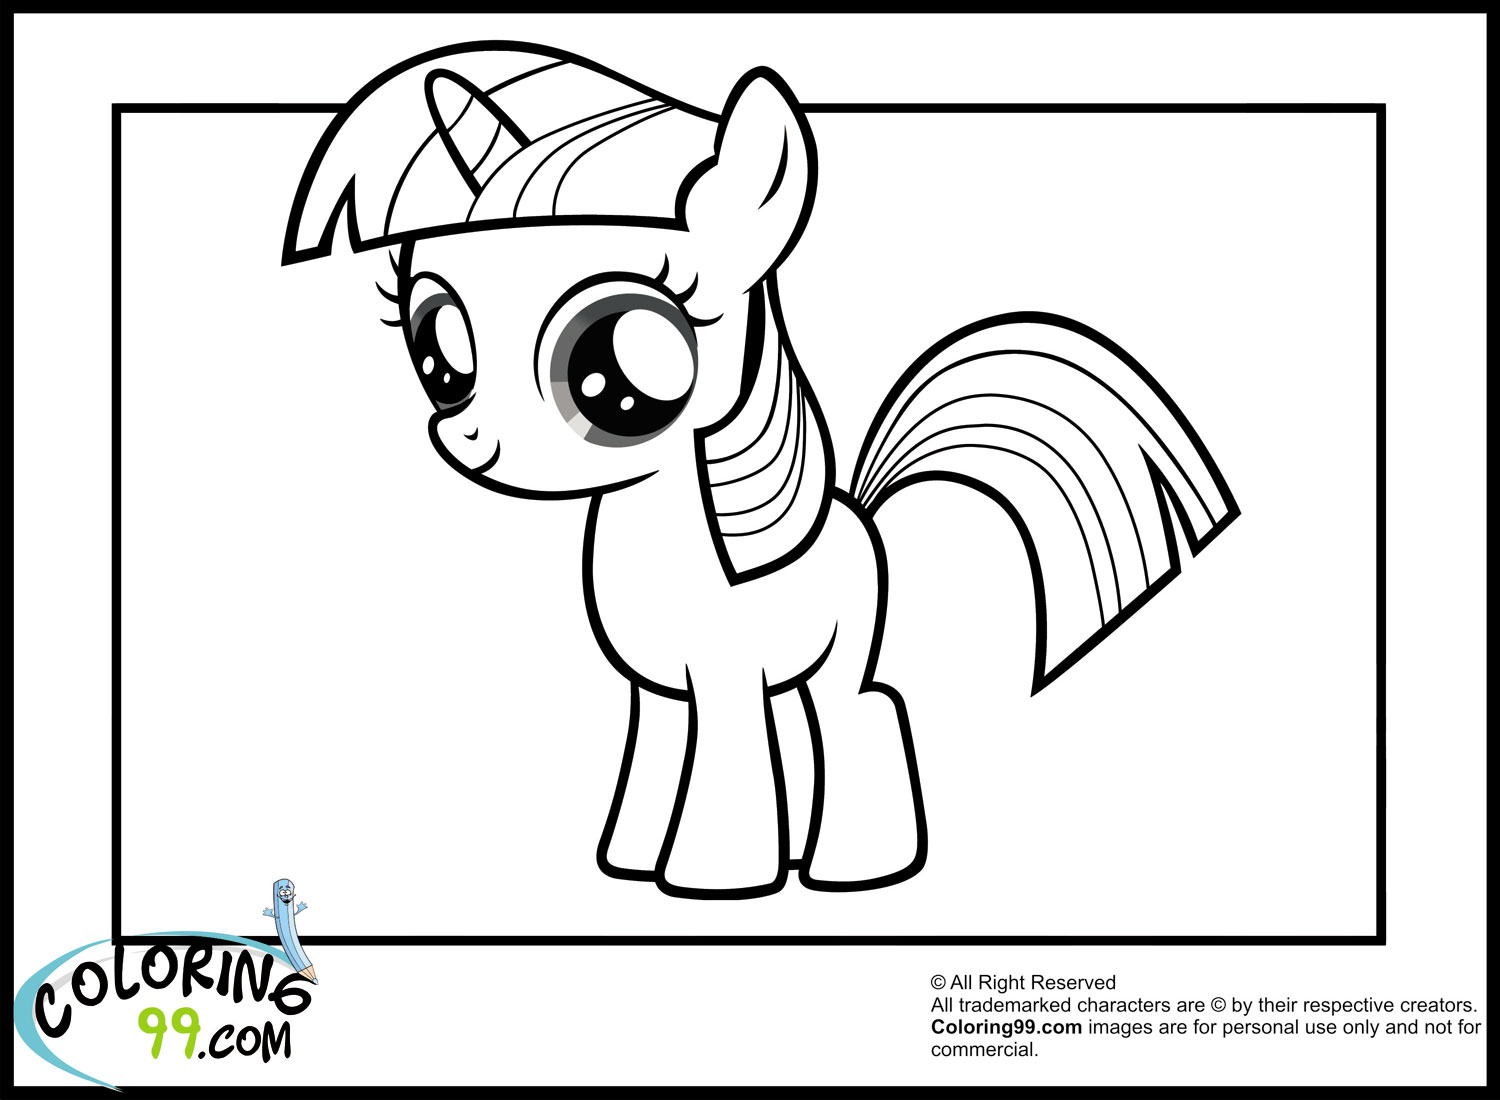 Coloring Pages Of Princess Twilight Sparkle : My little pony twilight sparkle coloring pages minister